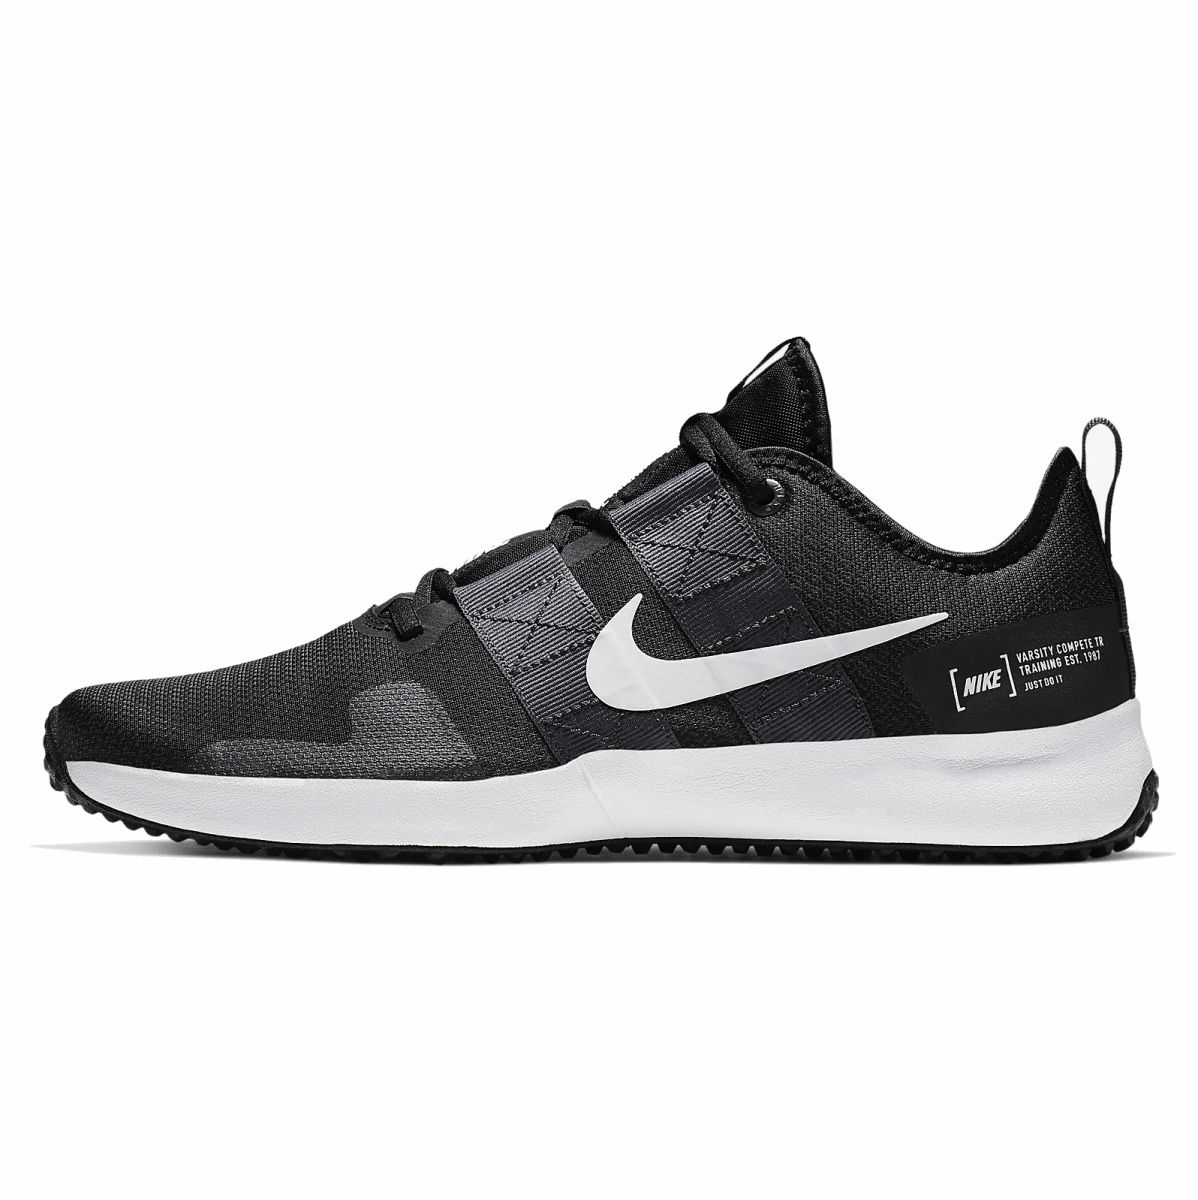 Tenis Nike Varsity Compete TR 2 Training Performance